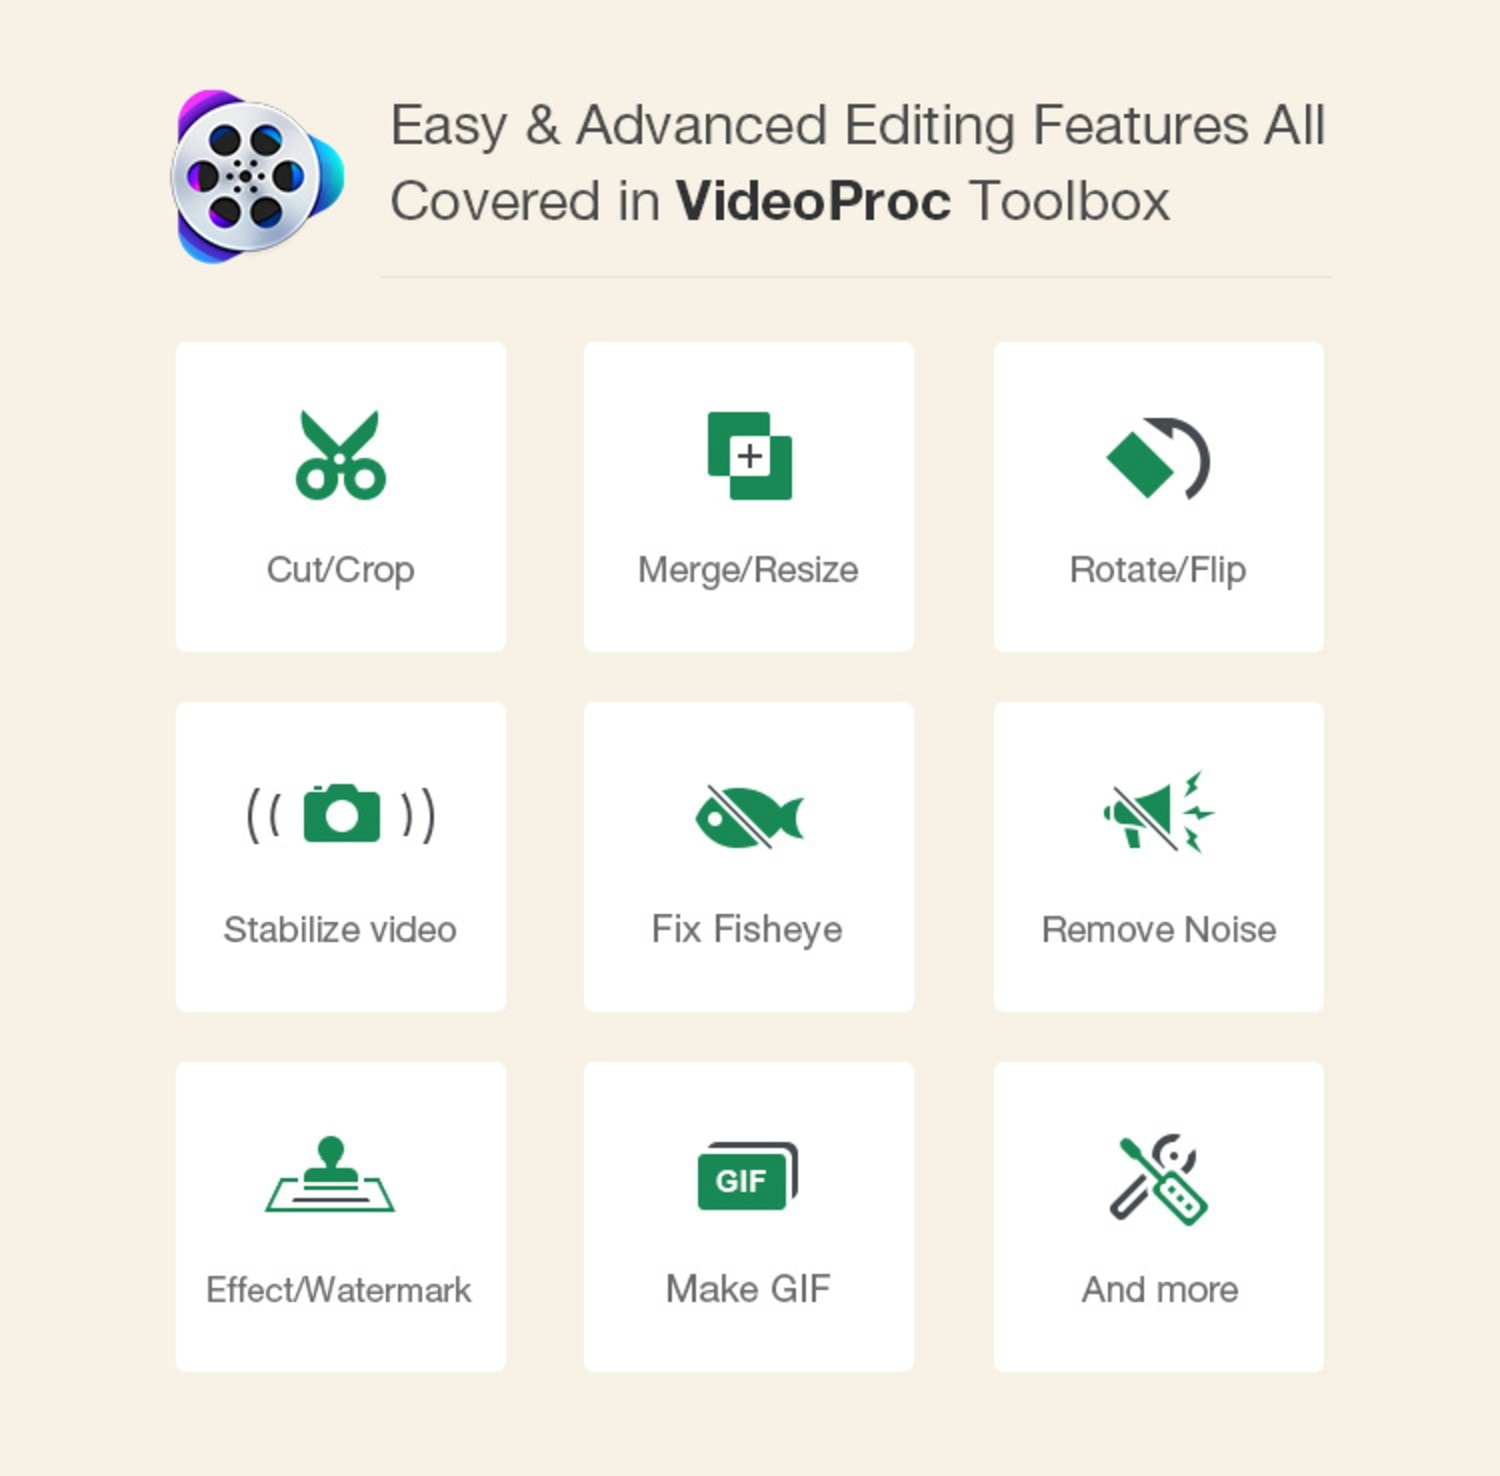 VideoProc can handle all your video editing and processing tasks, without a huge learning curve.